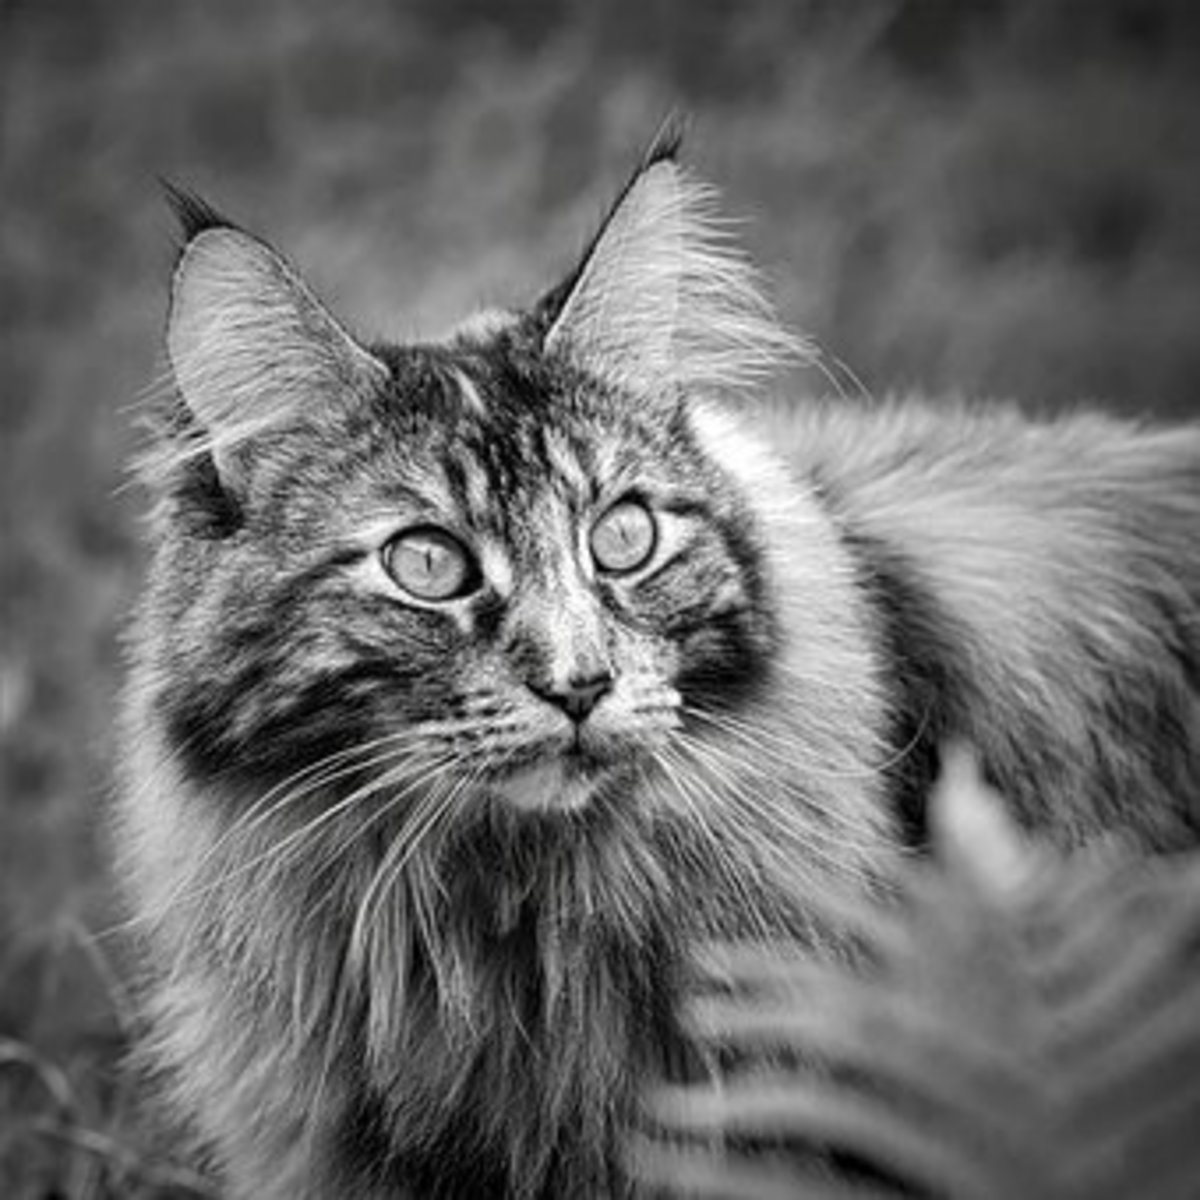 15 Astronomical Names for Maine Coon Cats